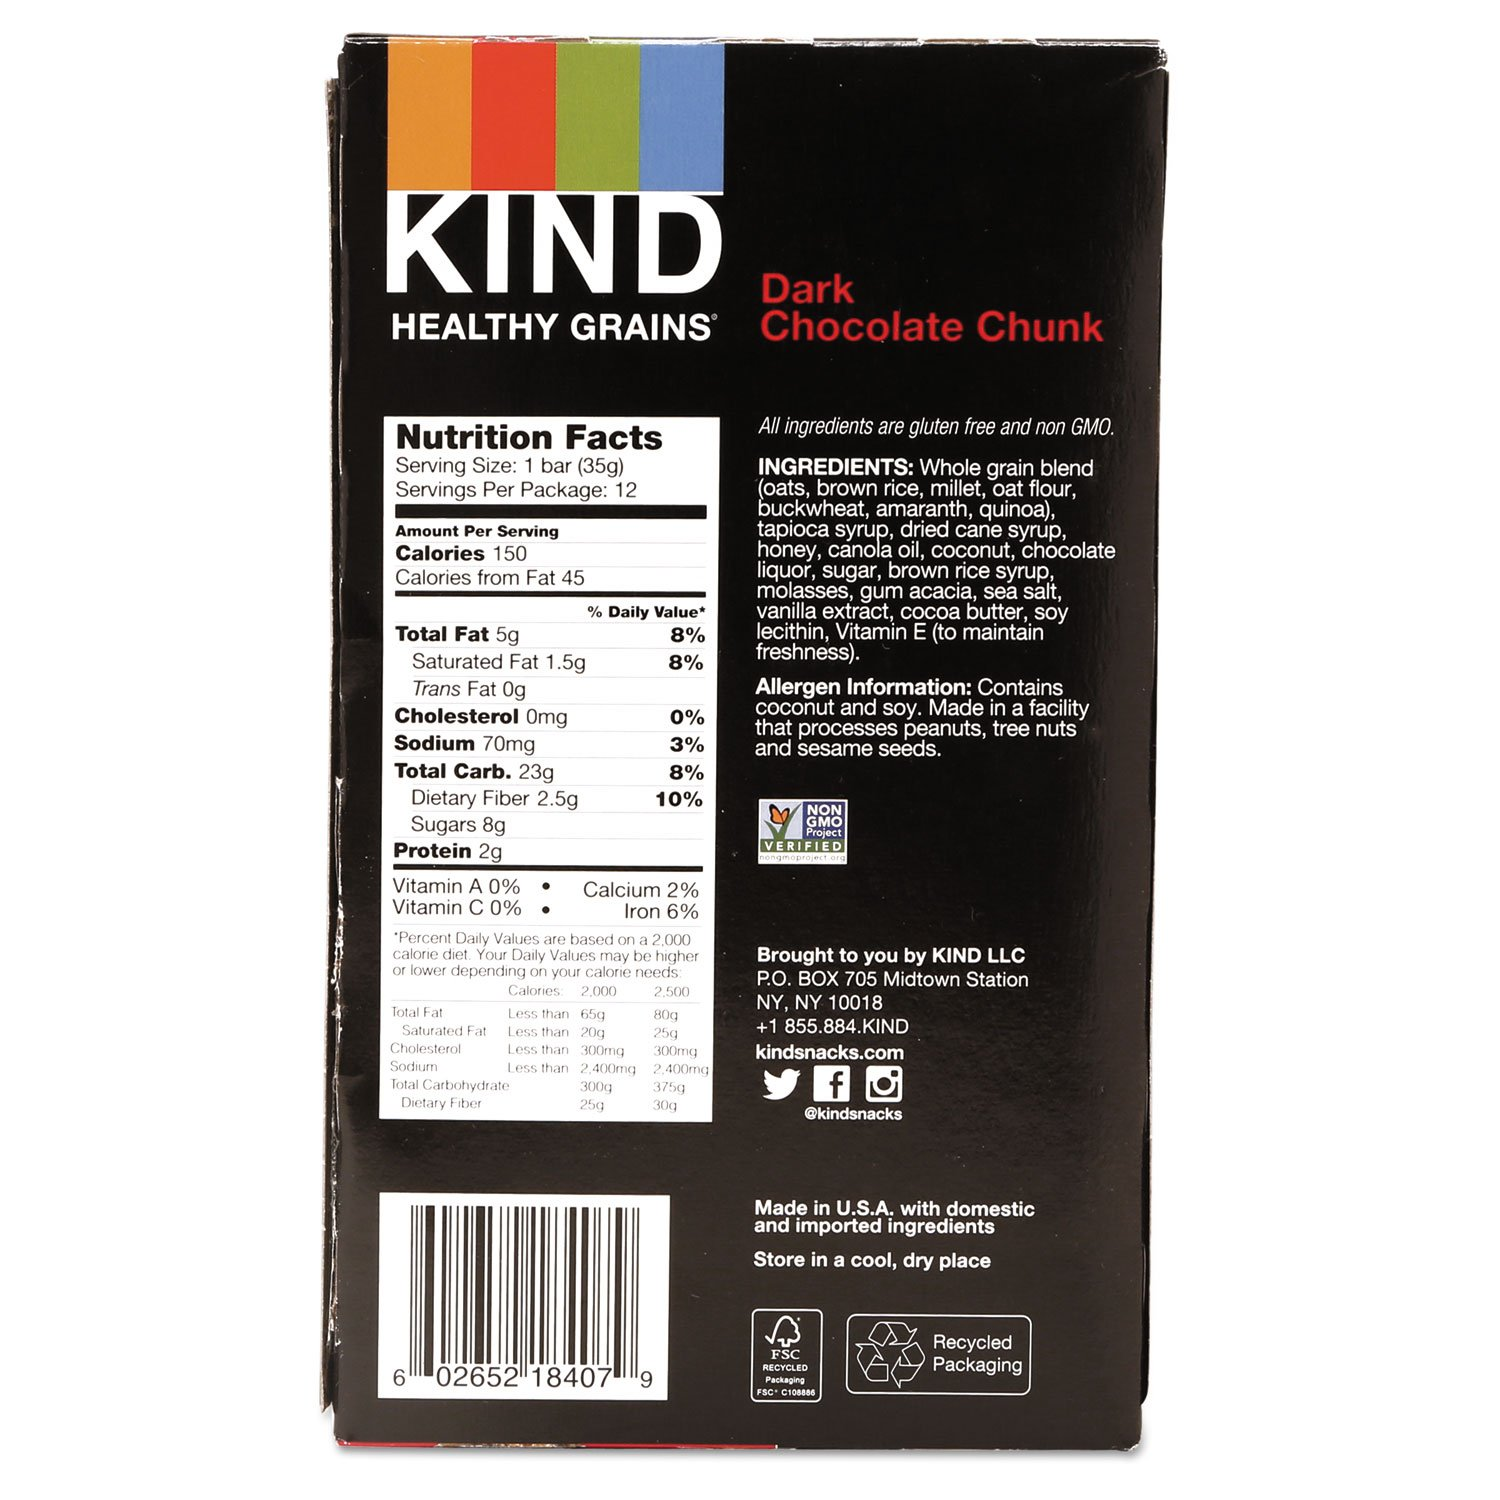 KIND Healthy Grains Bar, Dark Chocolate Chunk, 1.2 oz, 12/Box by KIND